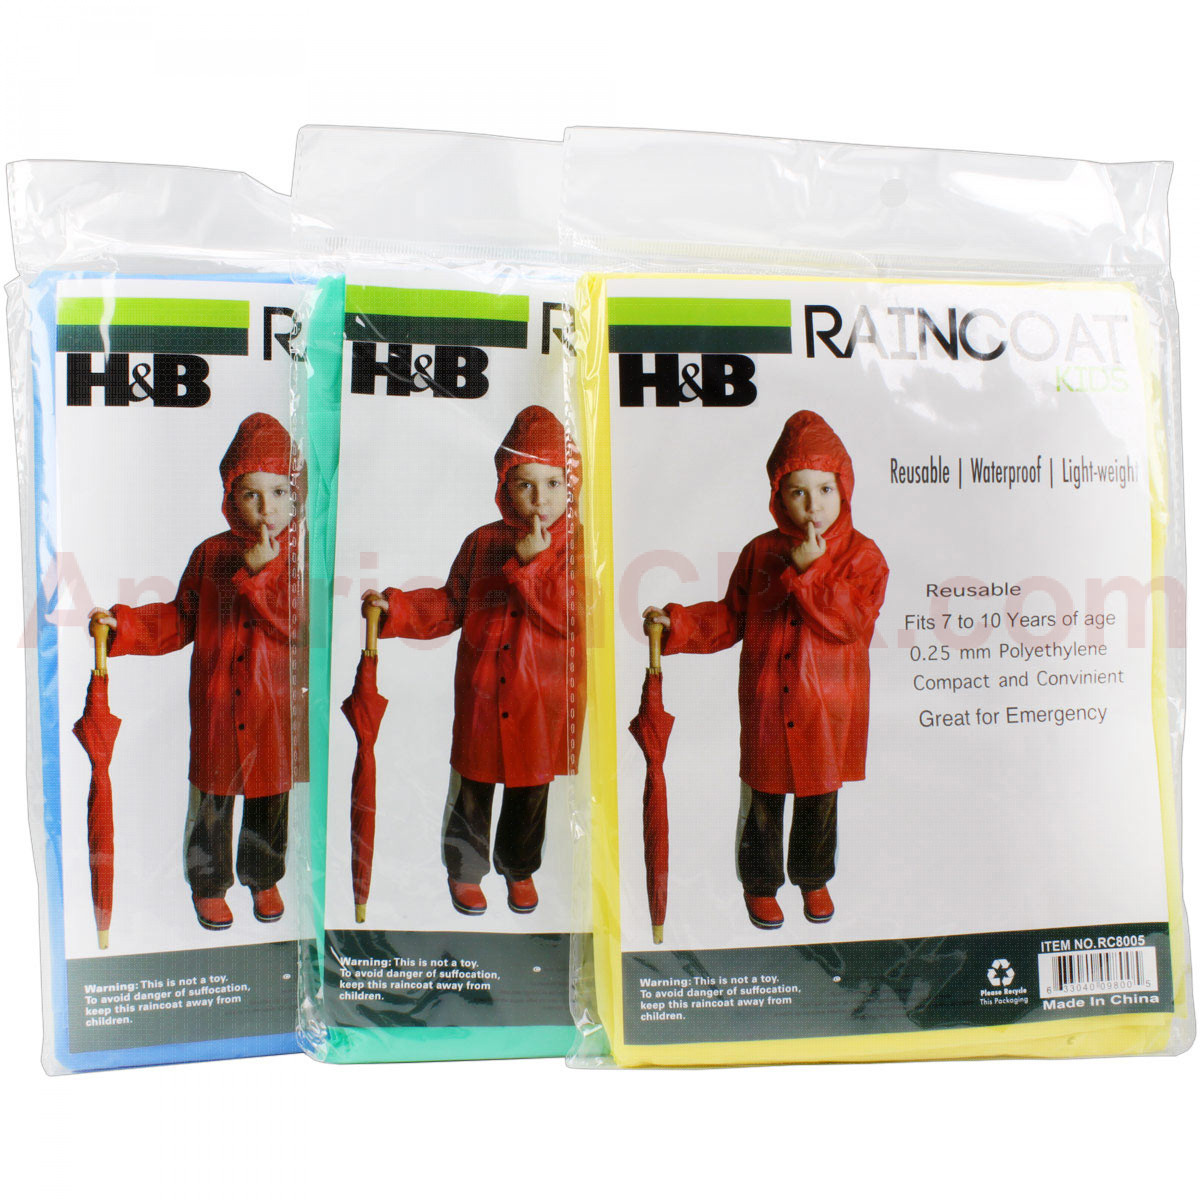 Emergency Poncho Kids Heavy Duty - Value Brand